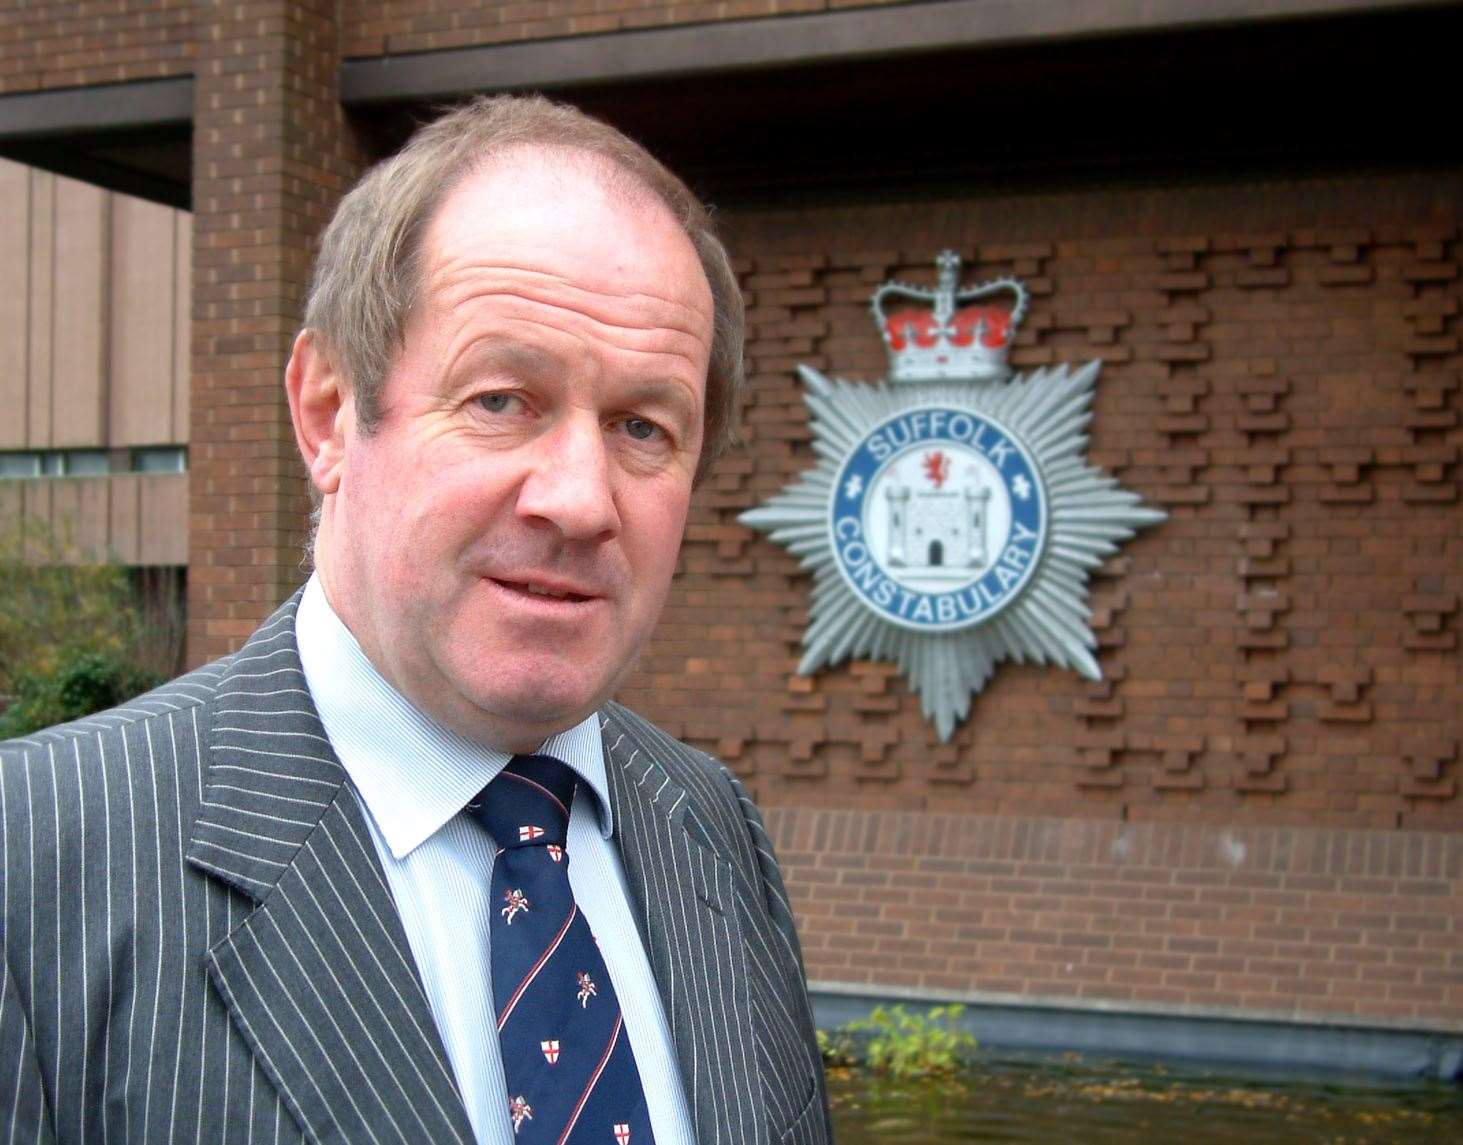 Tim Passmore Police and Crime Commissioner for Suffolk